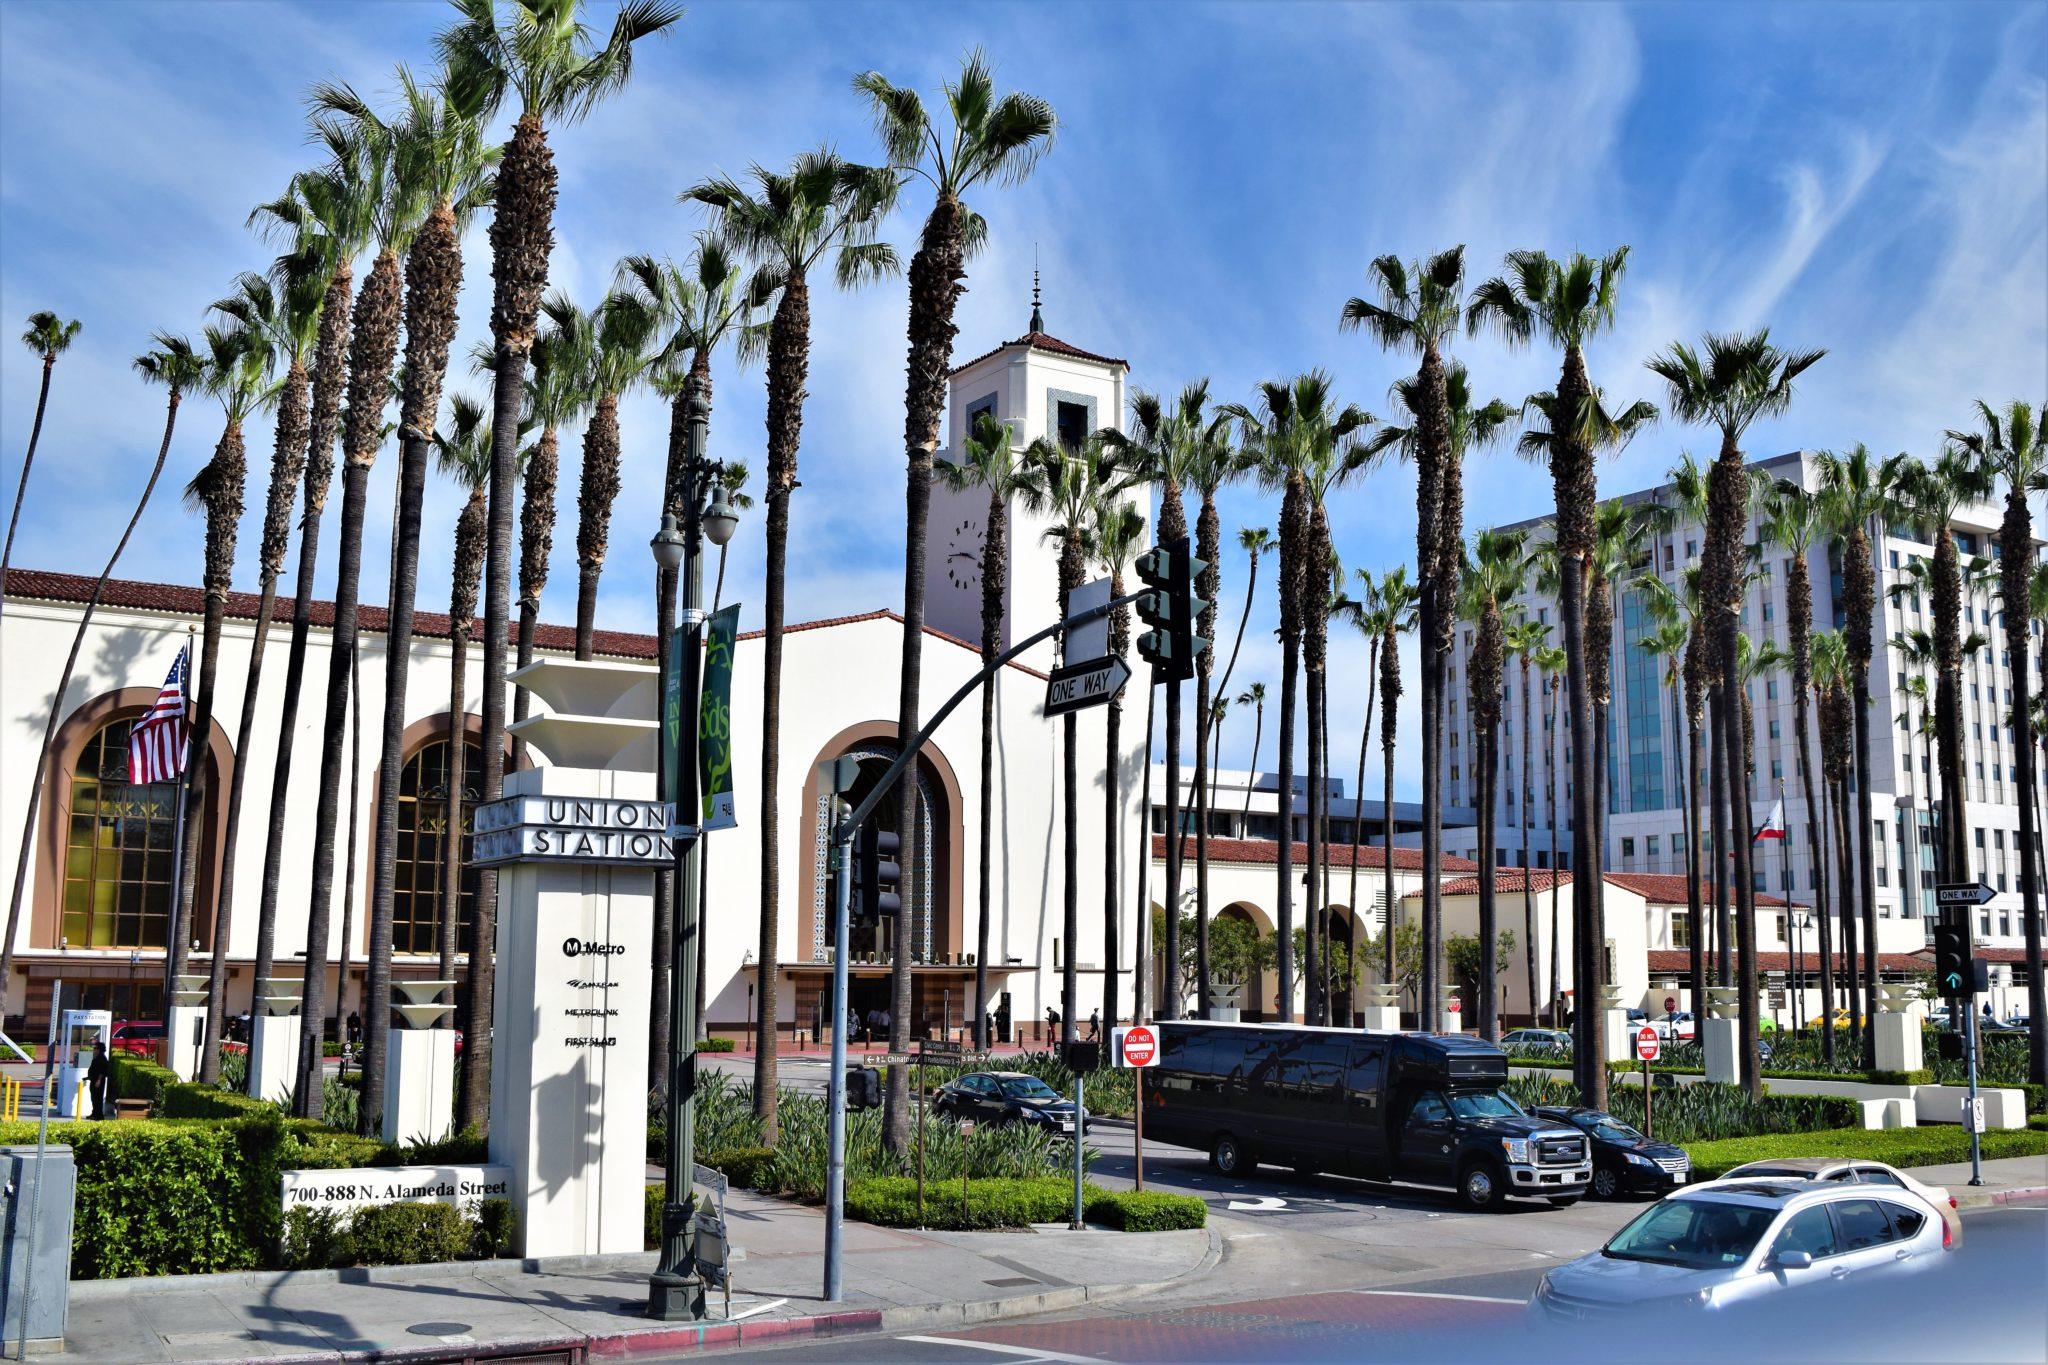 Union station palm trees, hop on hop off bus los angeles